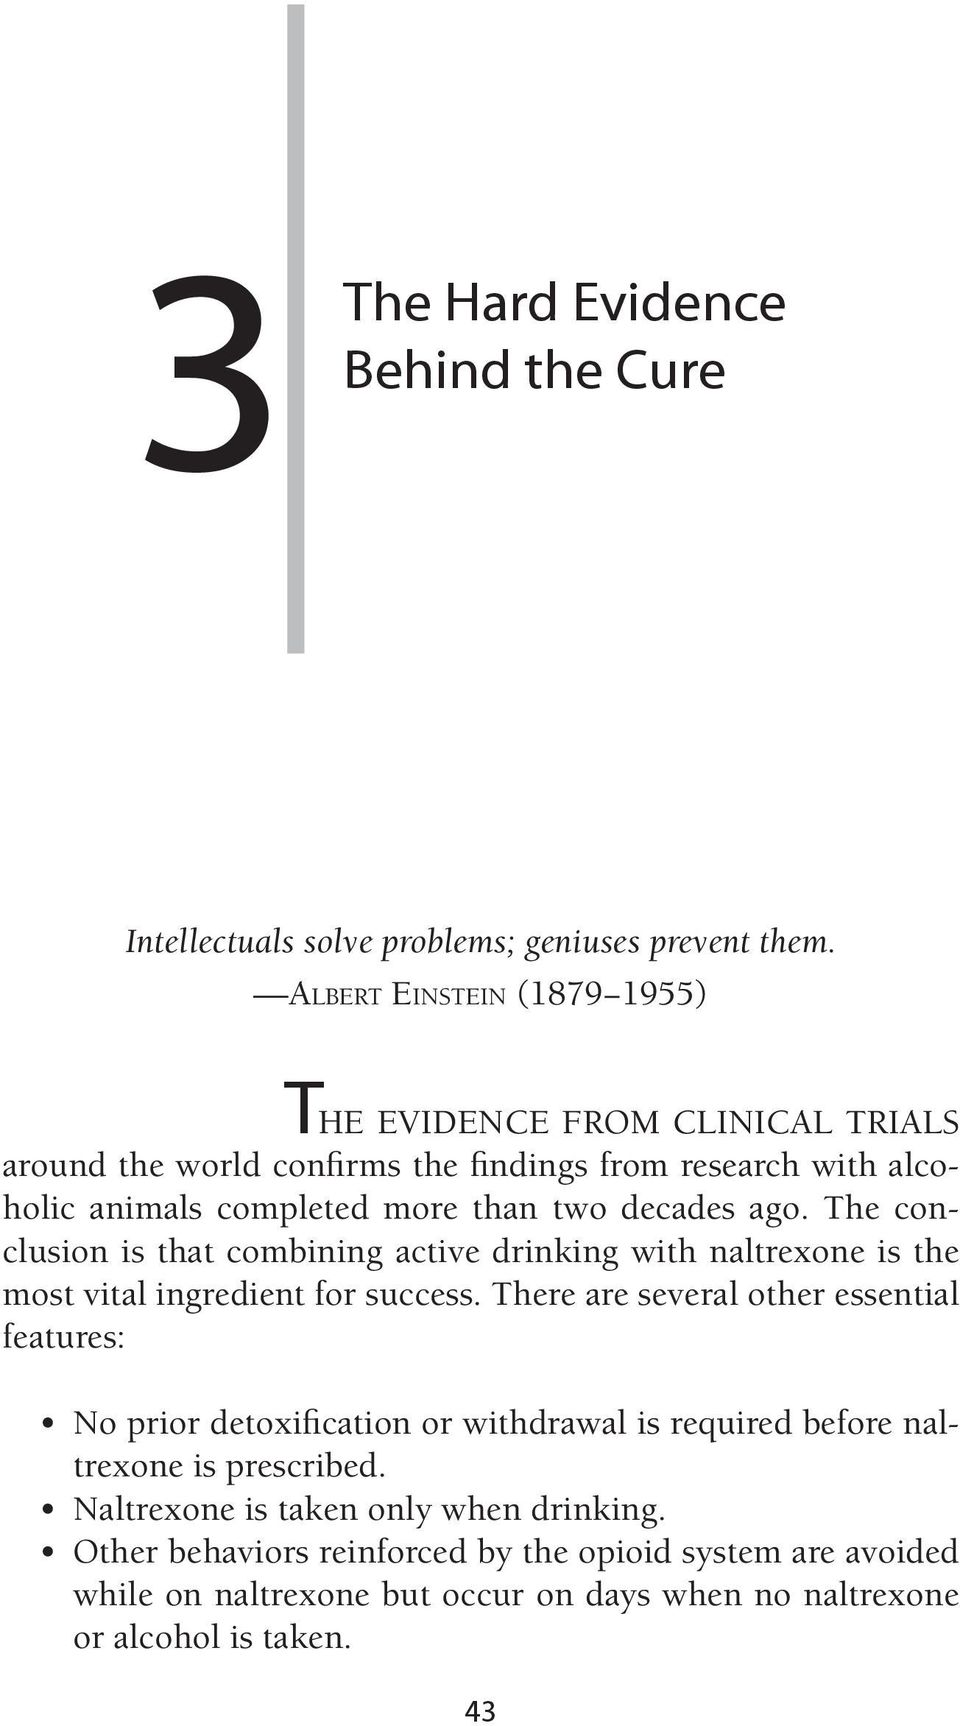 ago. The conclusion is that combining active drinking with naltrexone is the most vital ingredient for success.